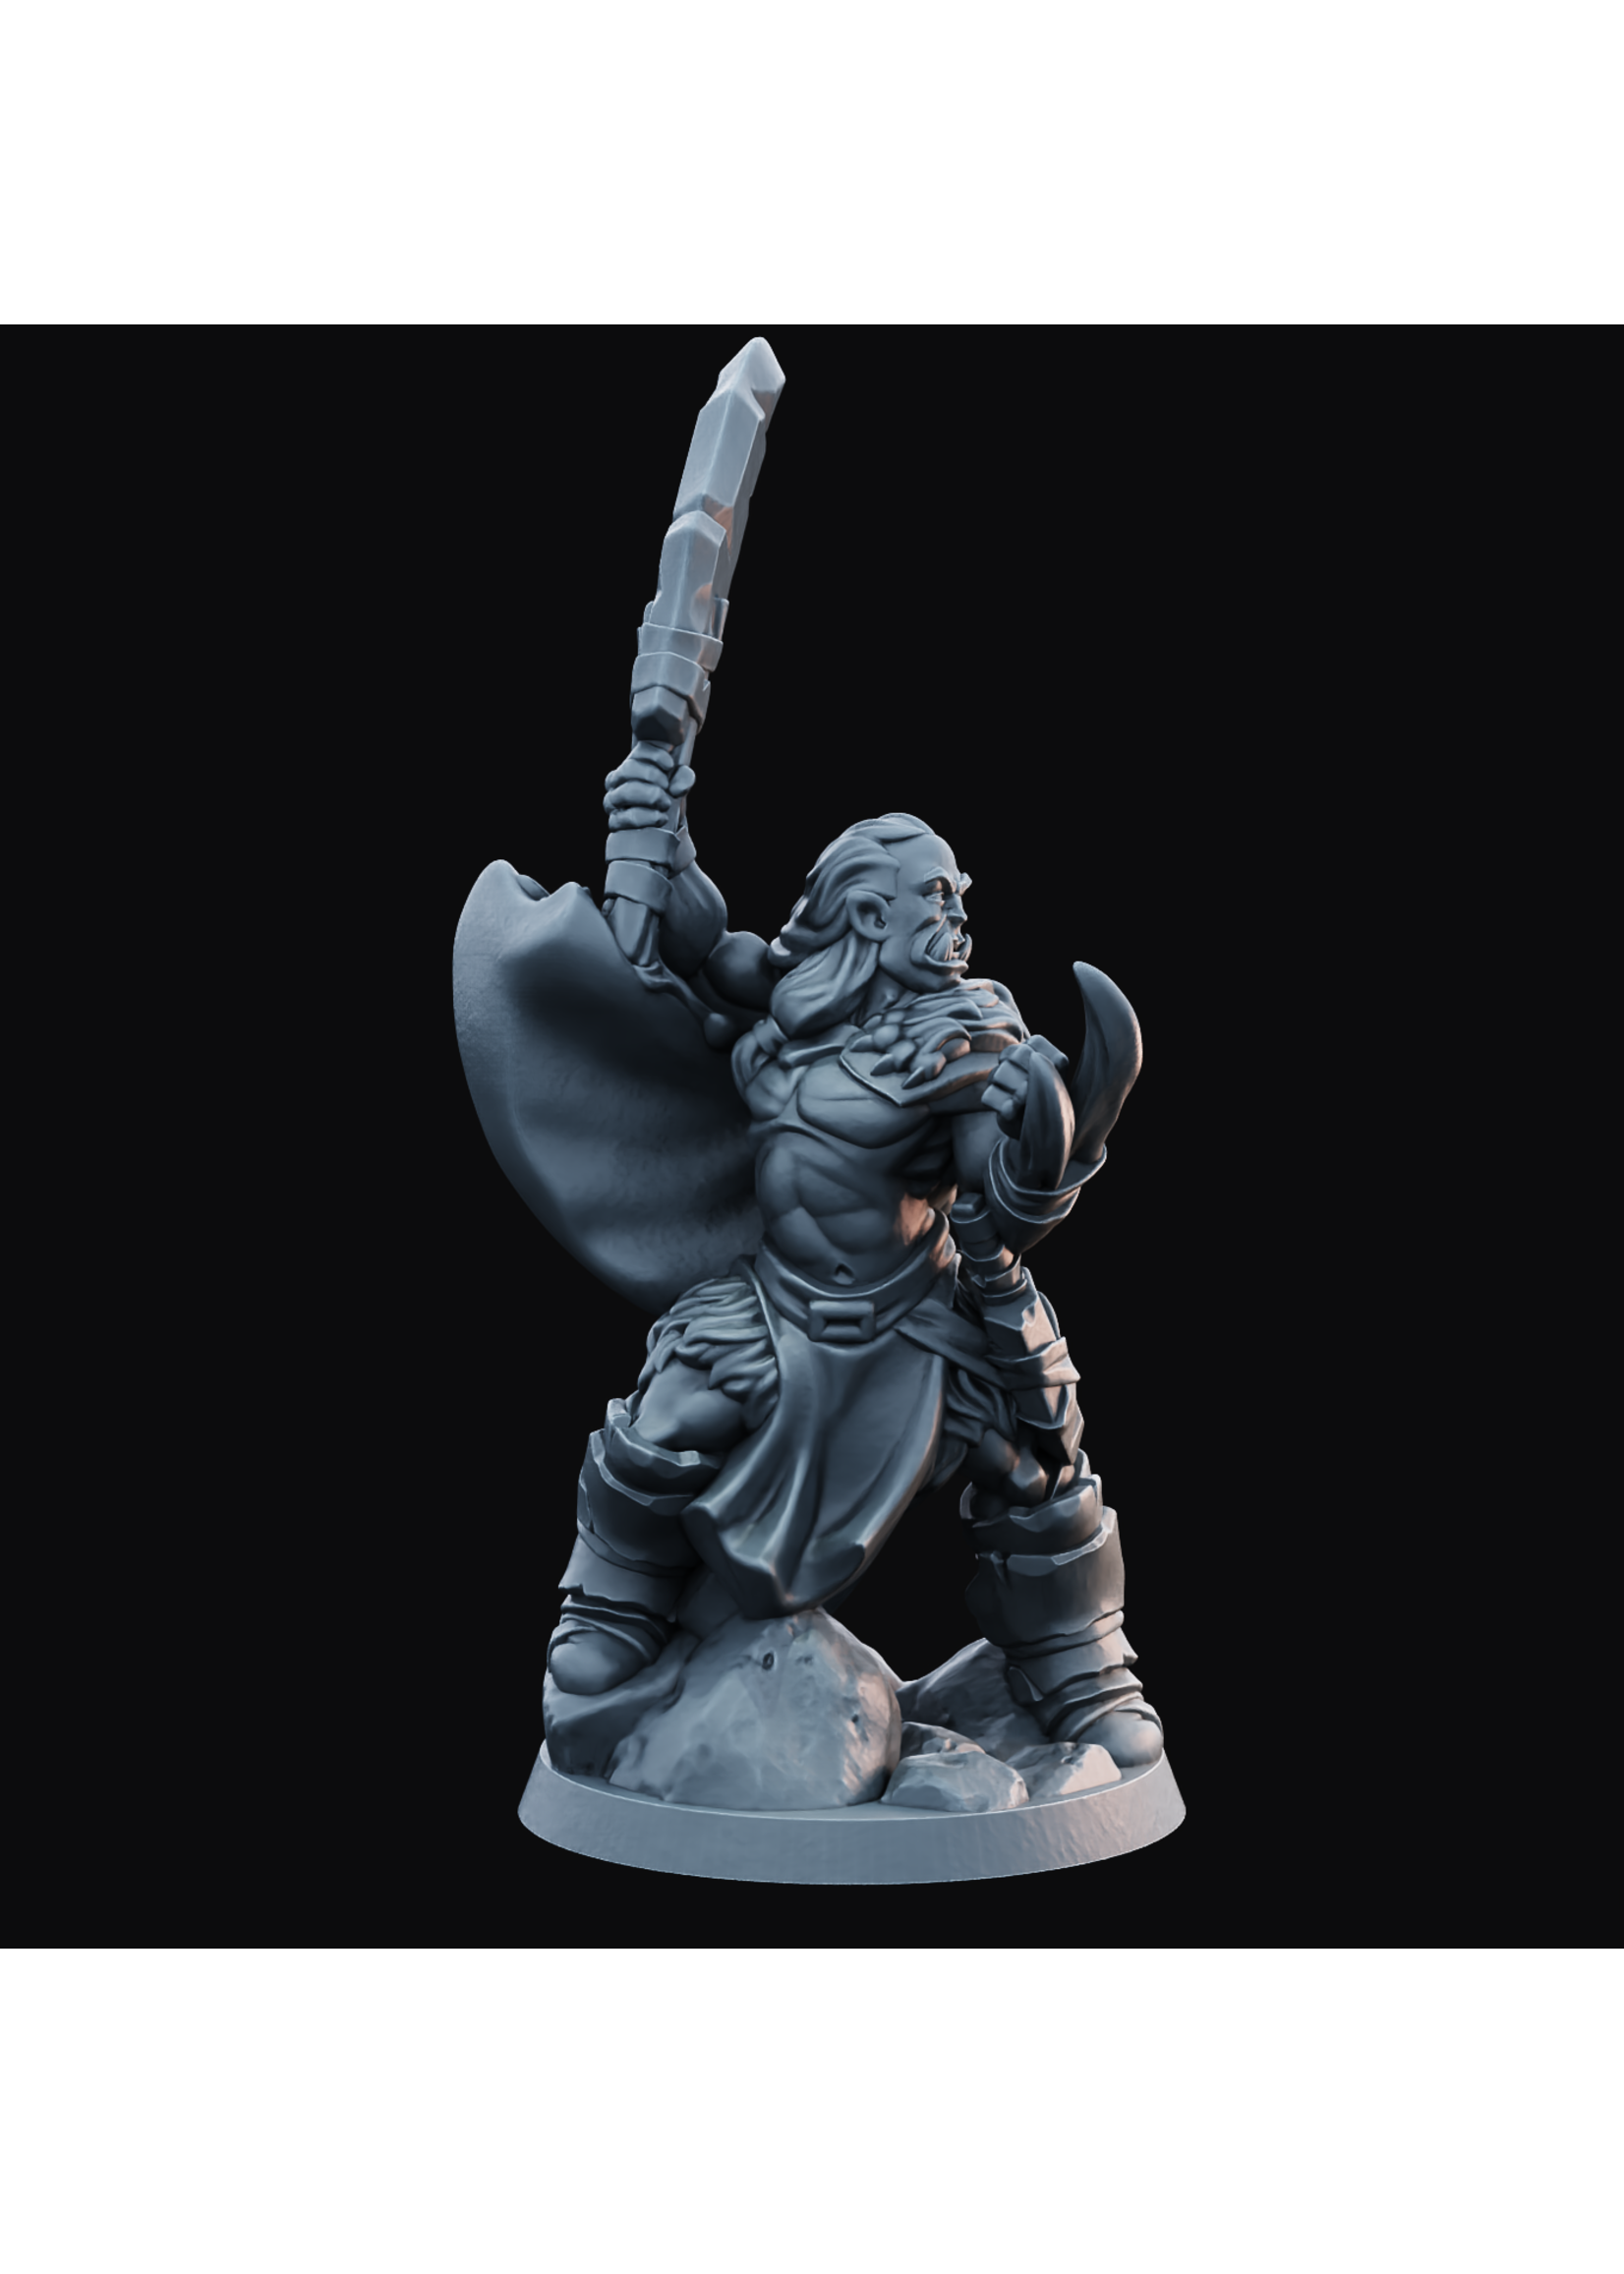 Half-Orc Male 01 - Hero of the Realm KS